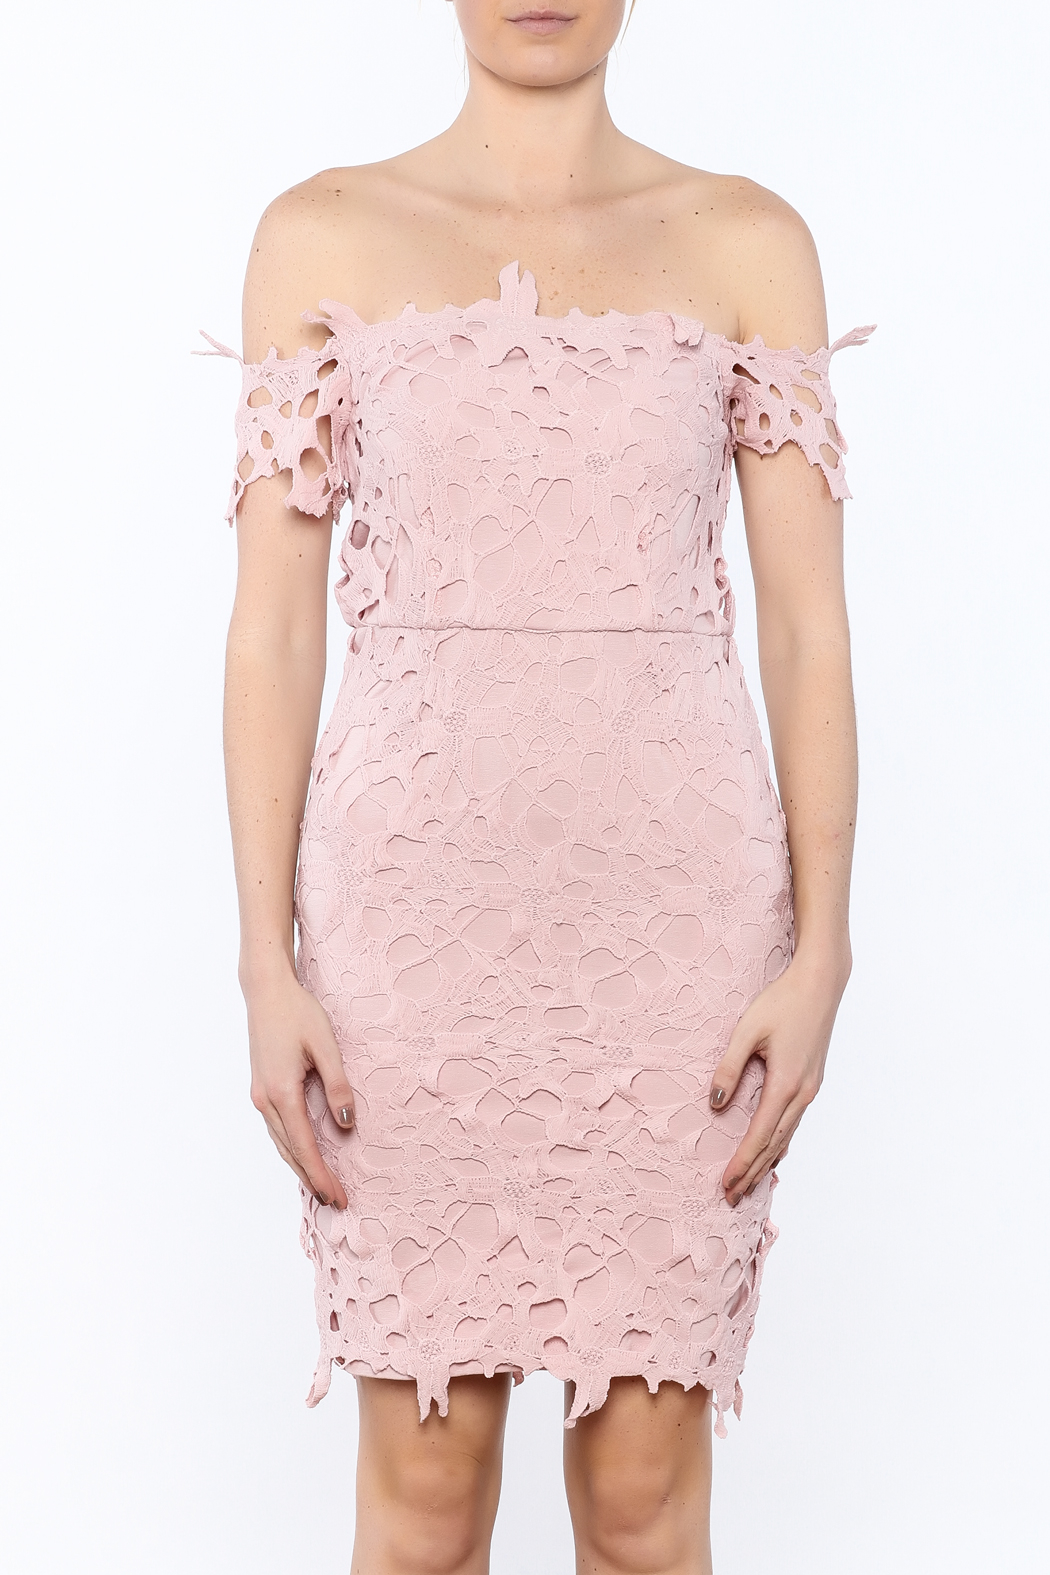 Ark & Co. Pink Crochet Dress - Side Cropped Image